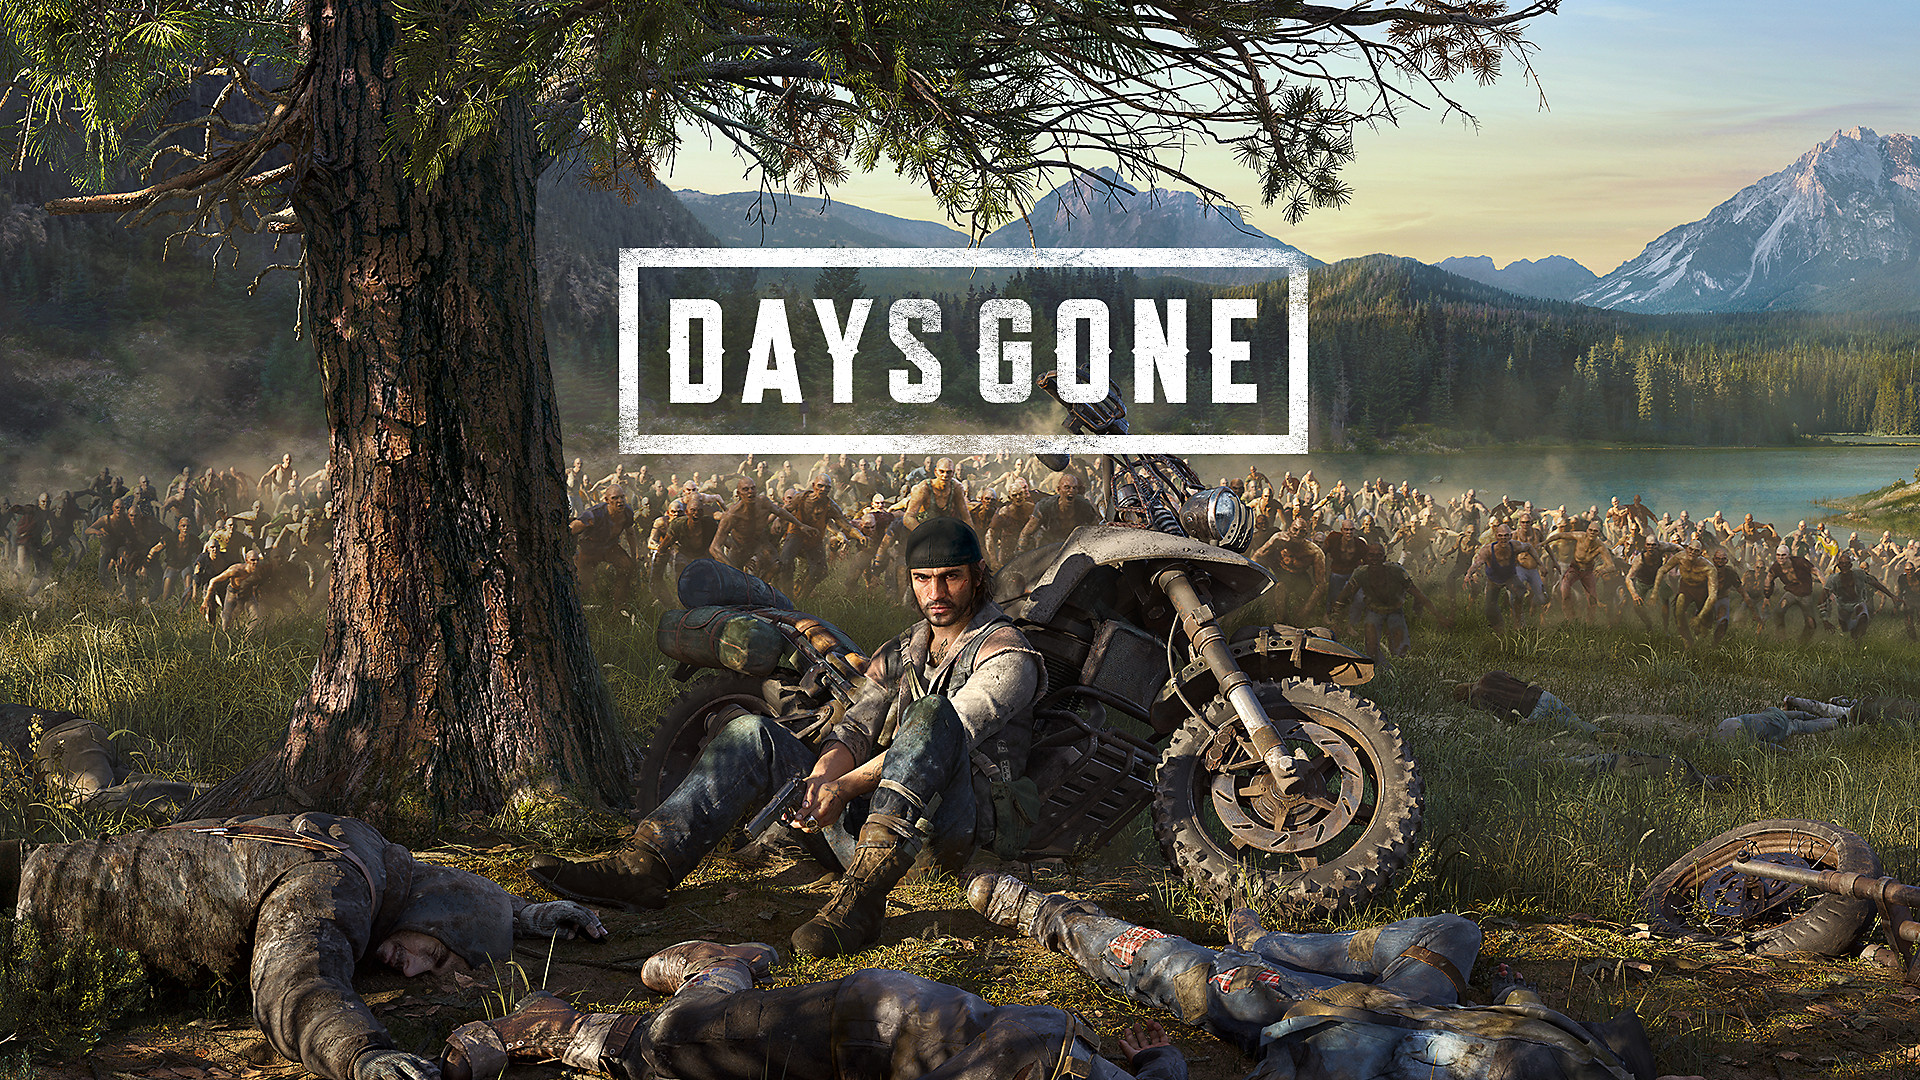 Bend Studio Releases Days Gone Update 1.25 Which Features The First-Ever Bike Challenge In The Post-Apocalyptic PS4 Game